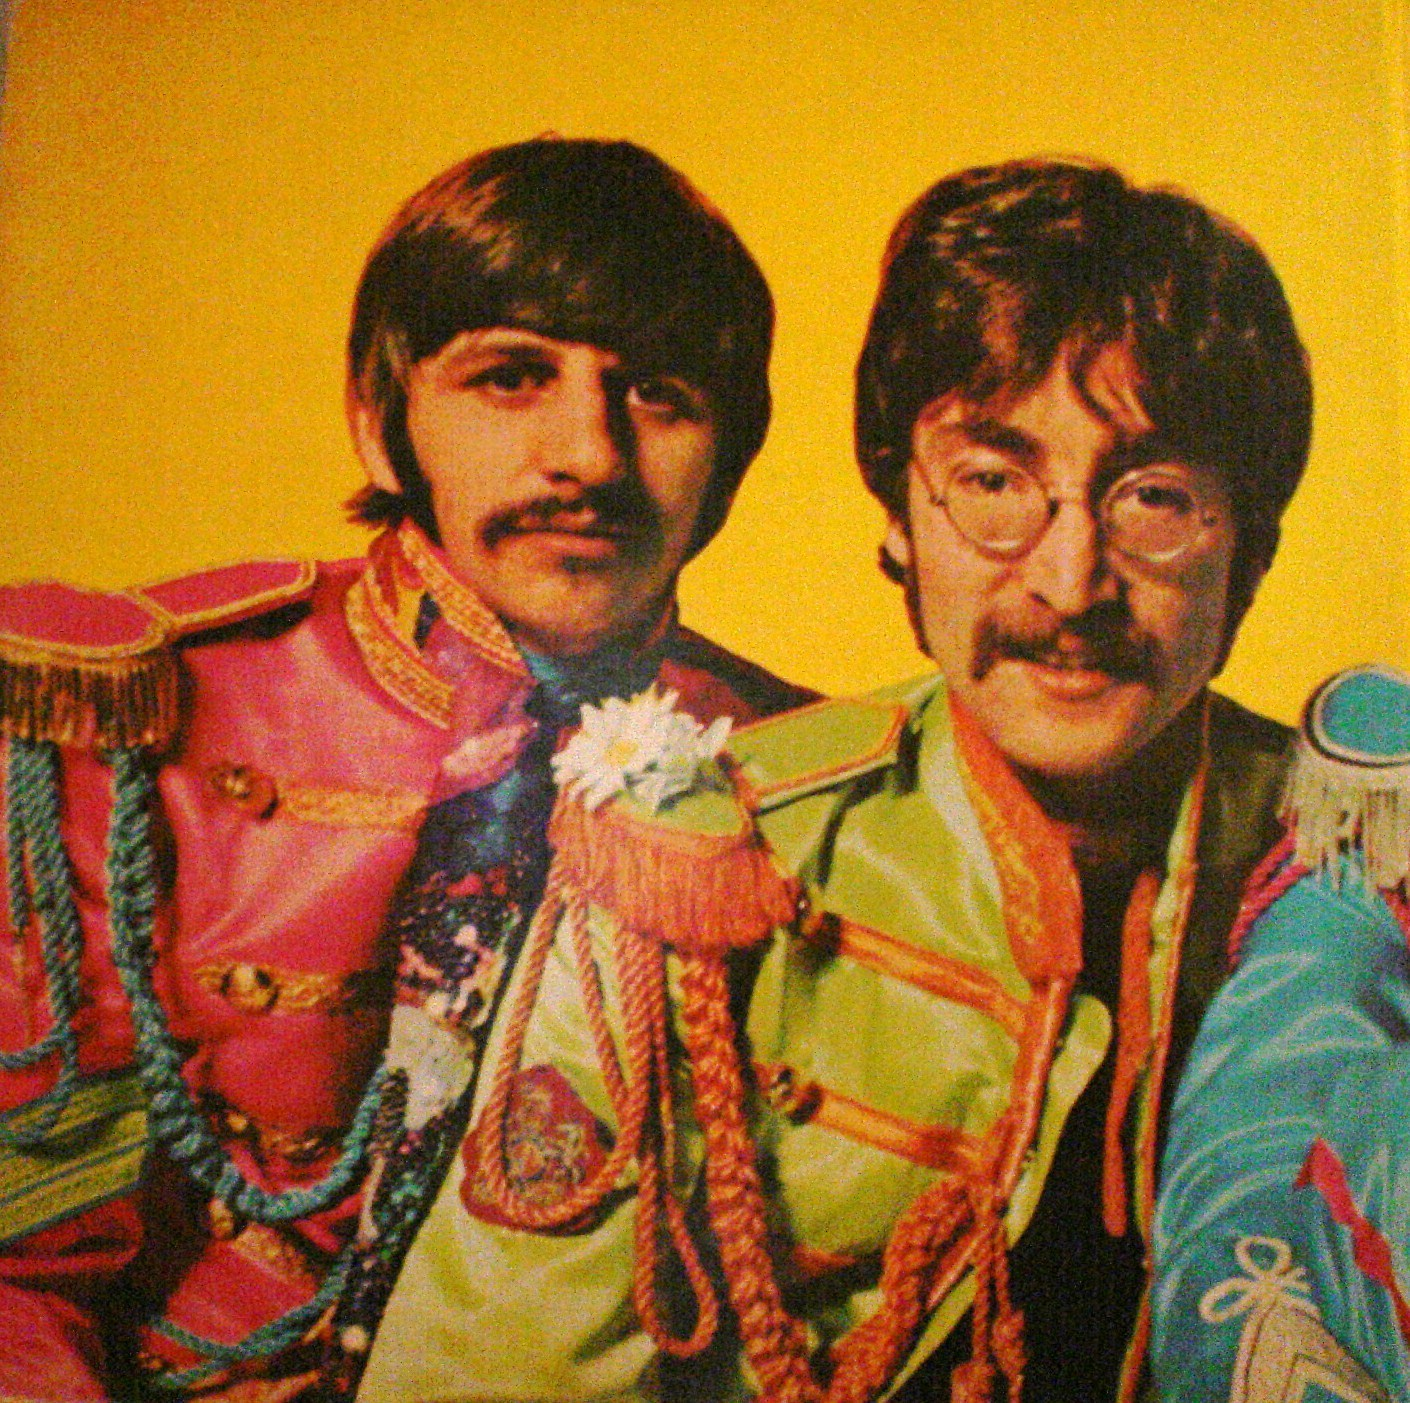 The Beatles Images Sgt Peppers Lonely Hearts Club Band Hd